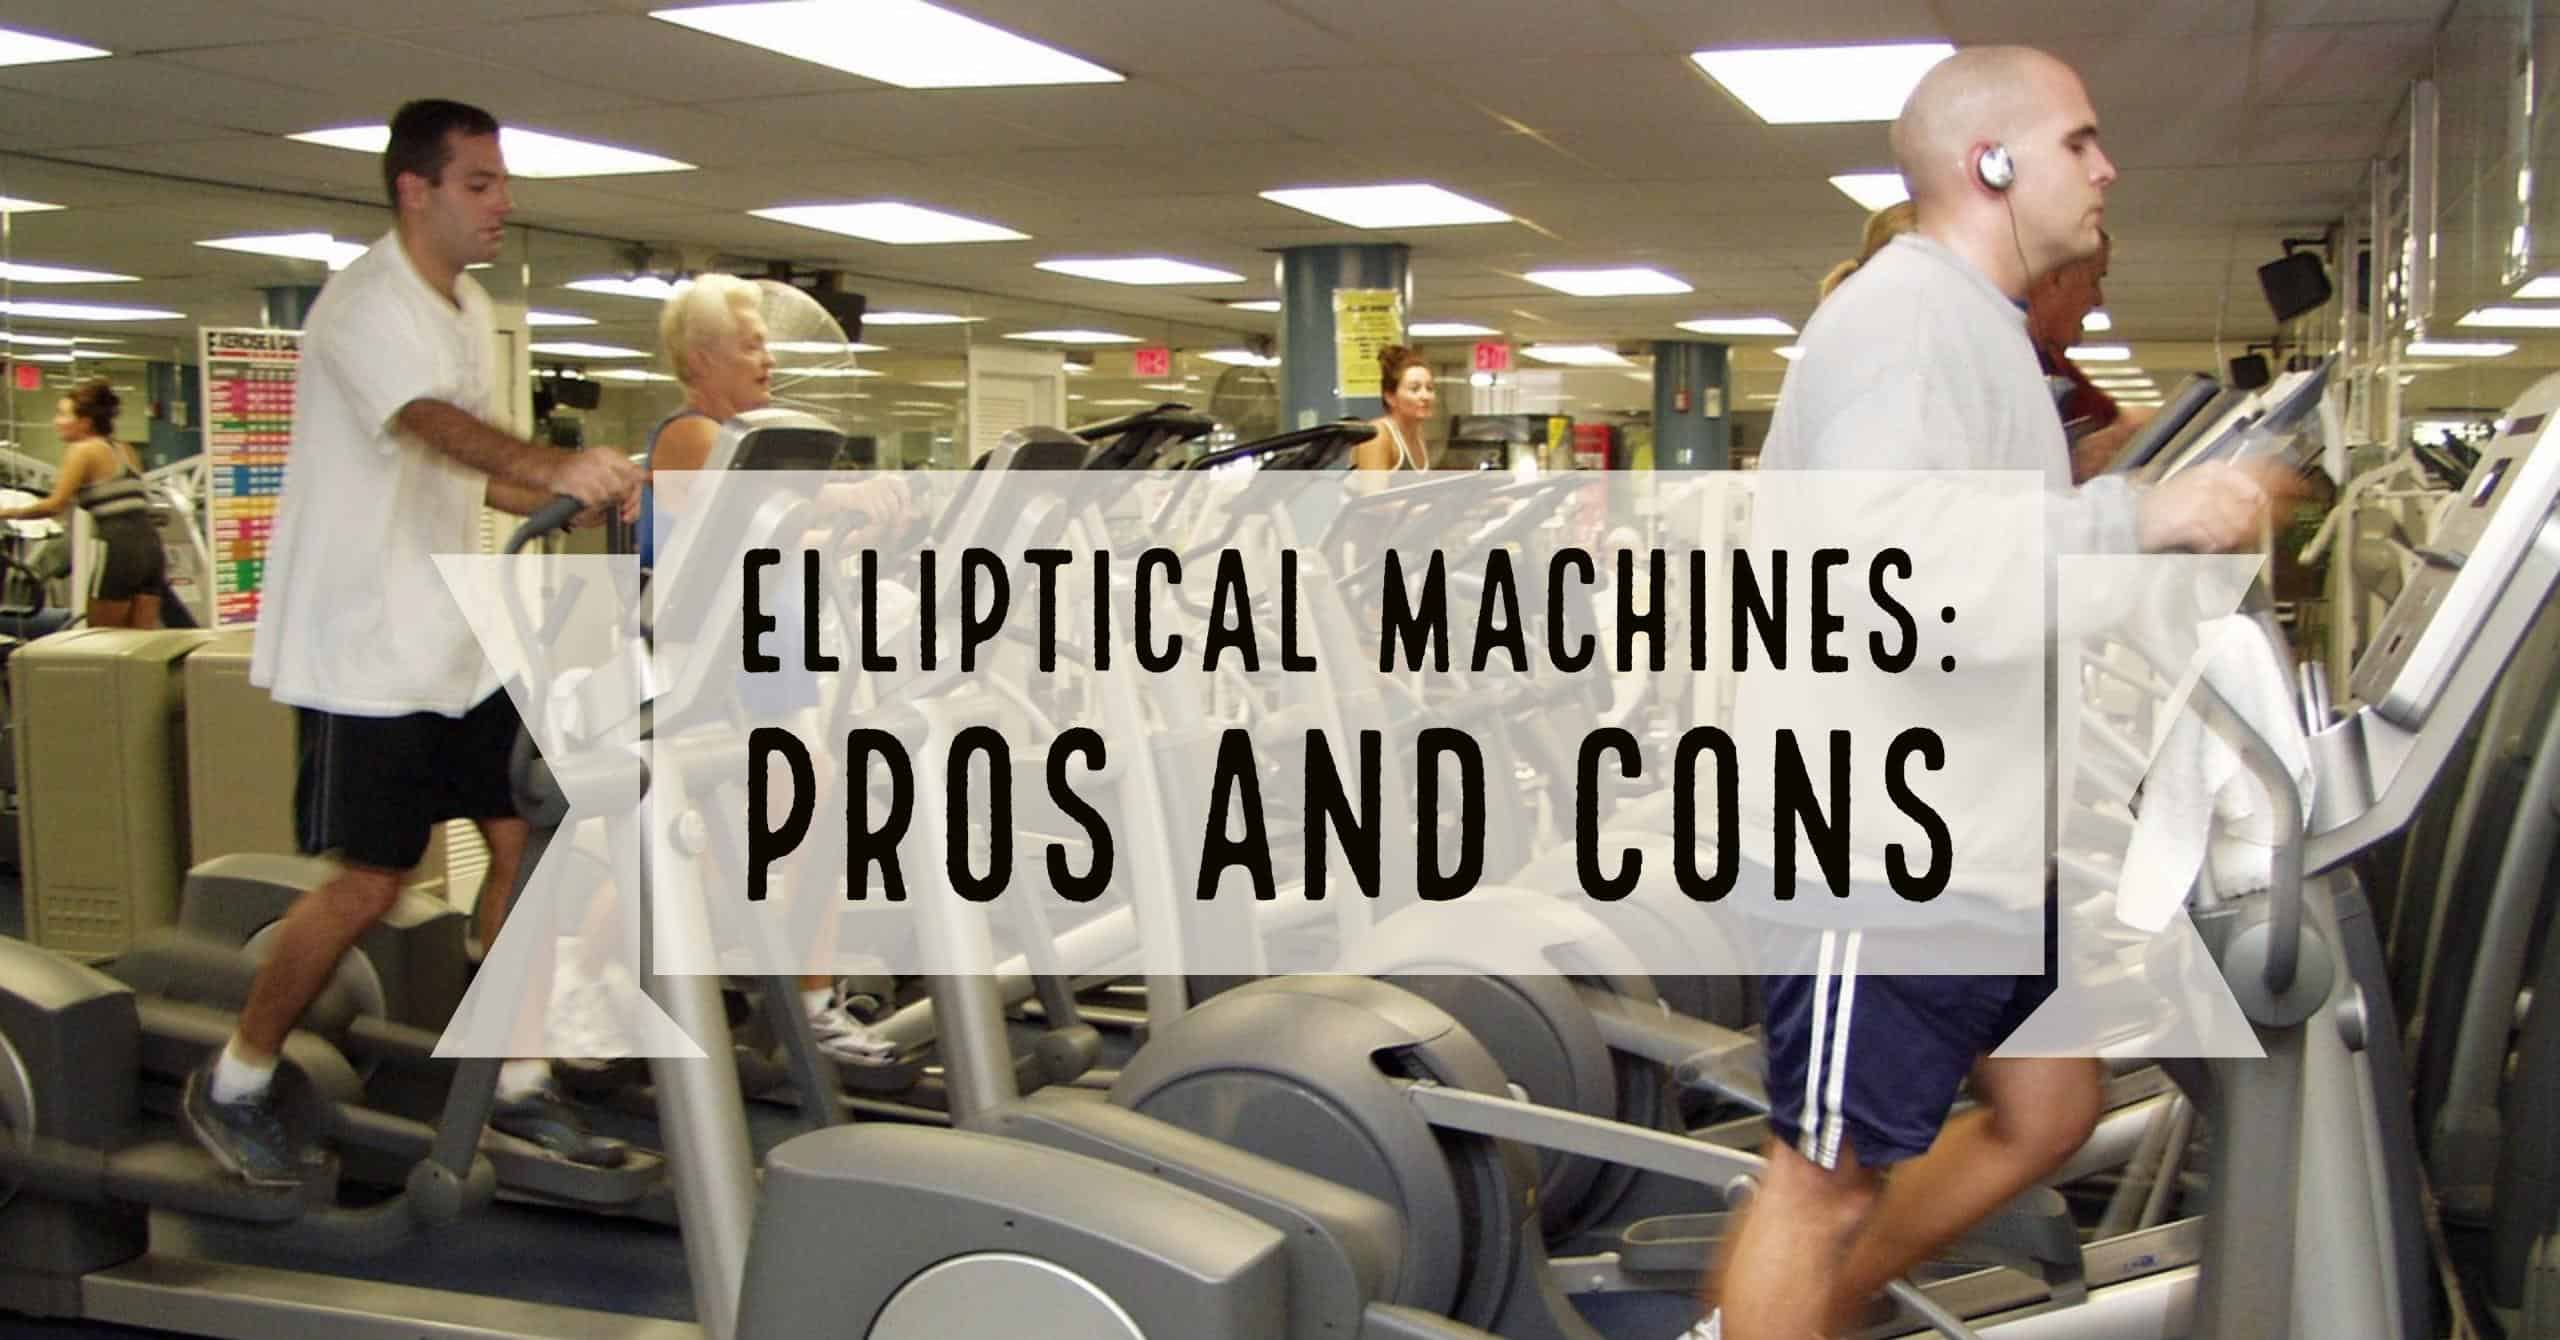 What are the benefits of an Elliptical Machines: We break down the Pros and Cons.